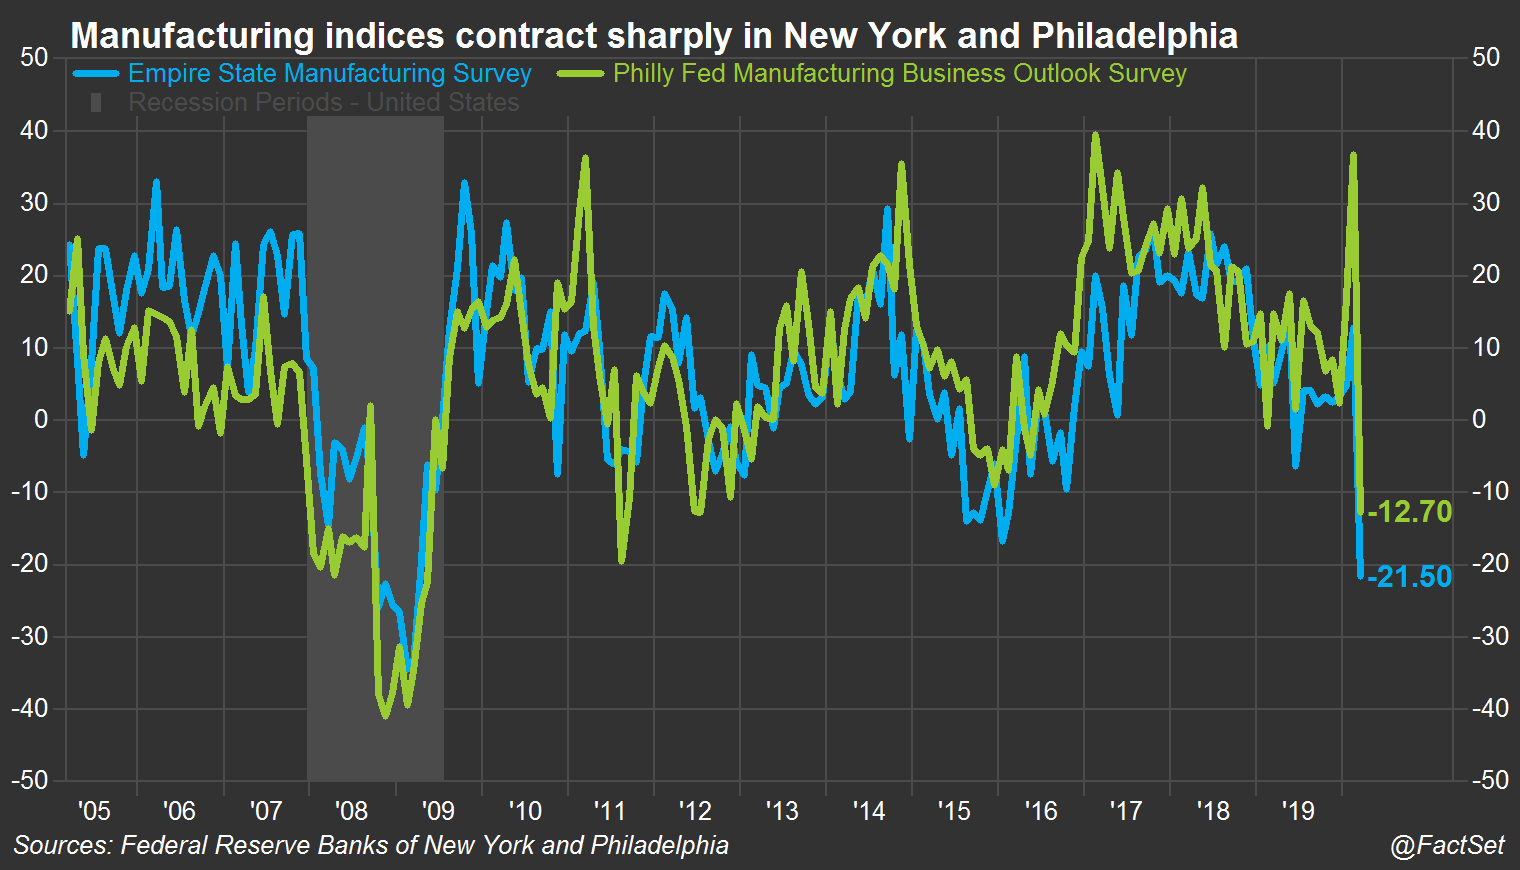 NY and Philly Fed mfg indices